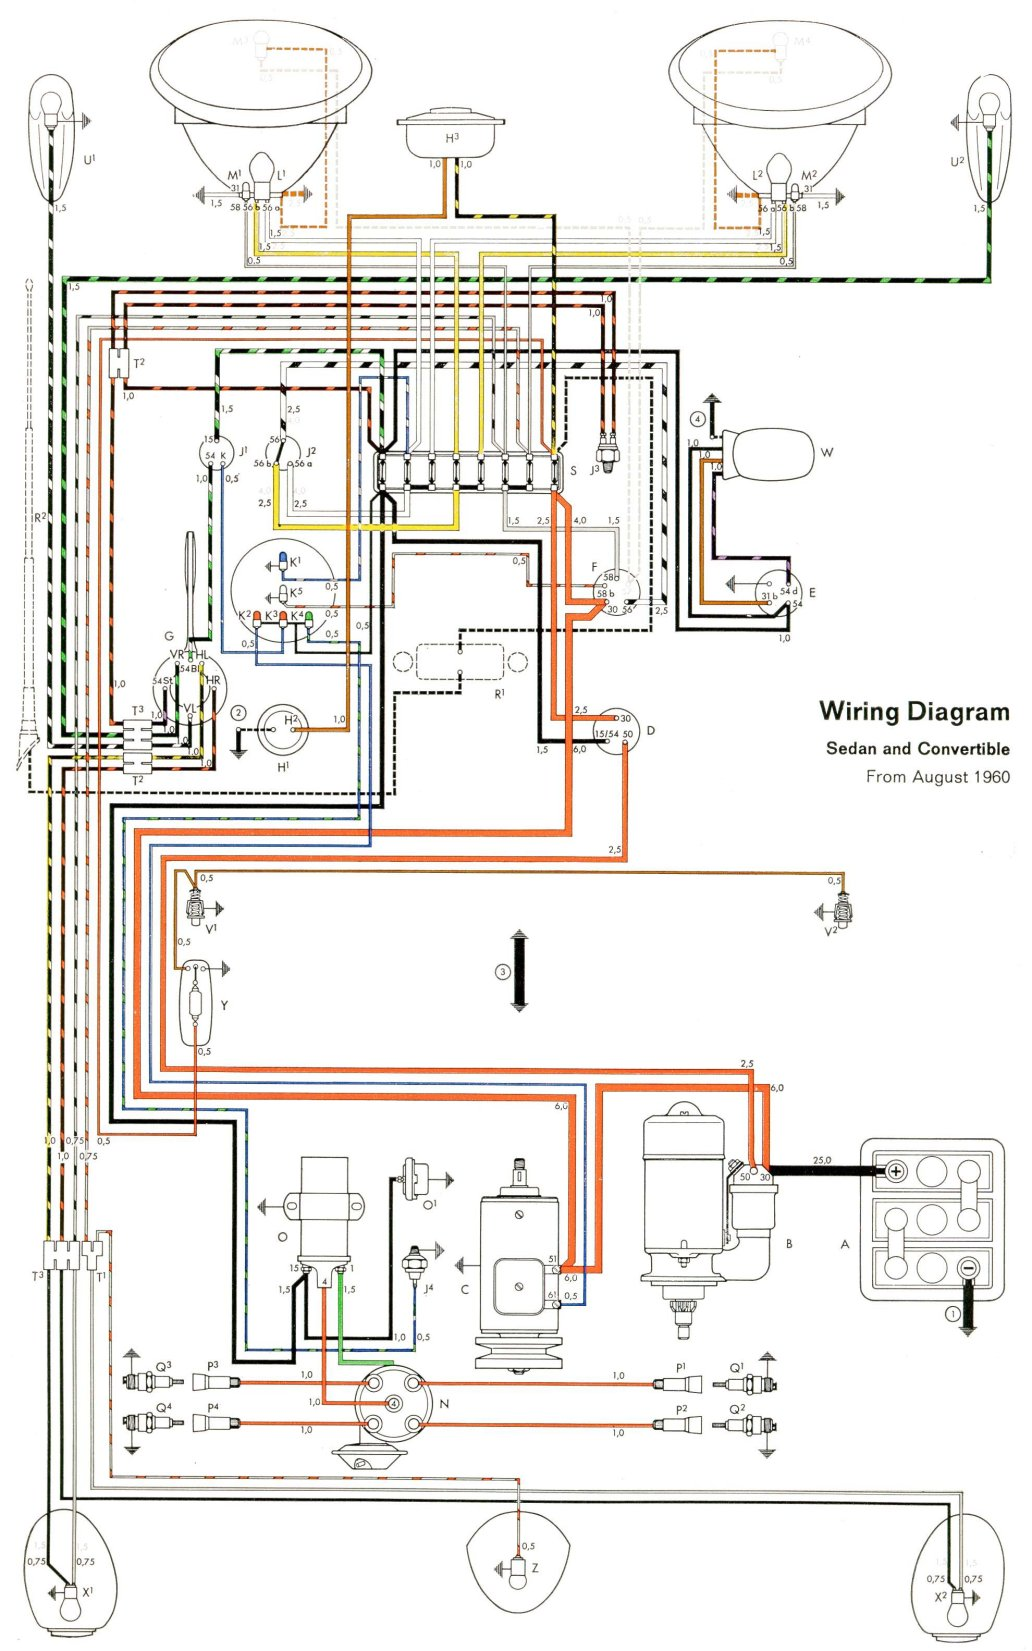 bug_61 thesamba com type 1 wiring diagrams vw wiring diagrams at pacquiaovsvargaslive.co